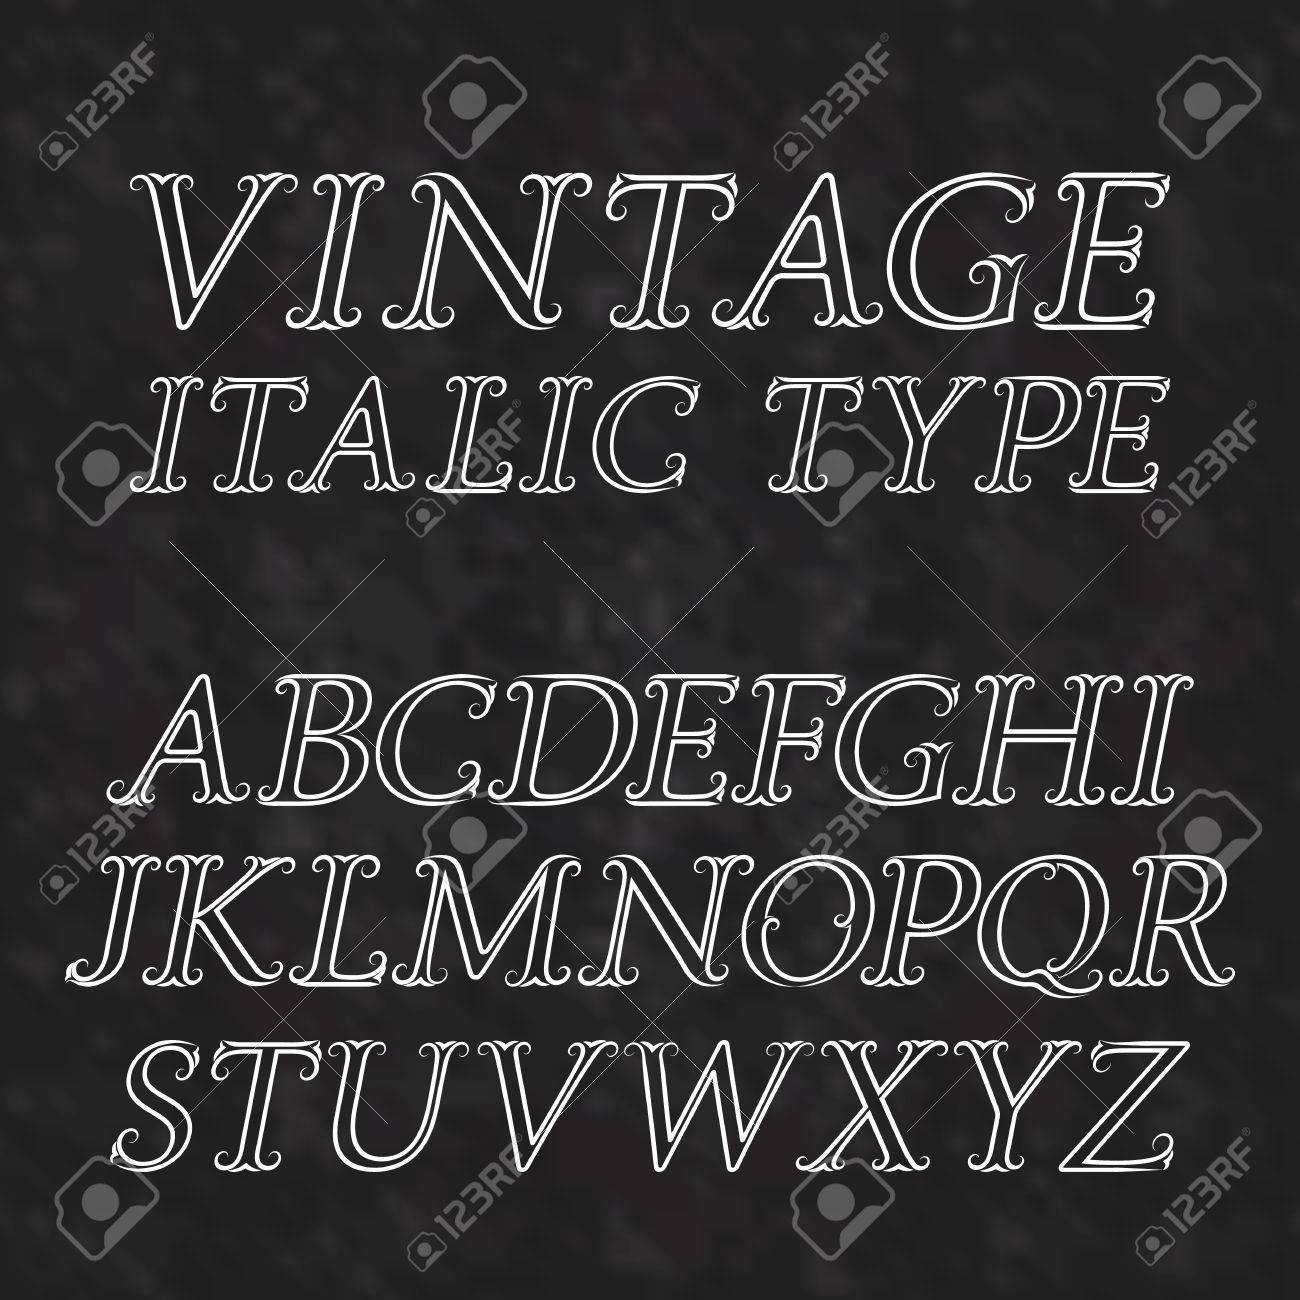 vintage letters with flourishes vintage italic type font in